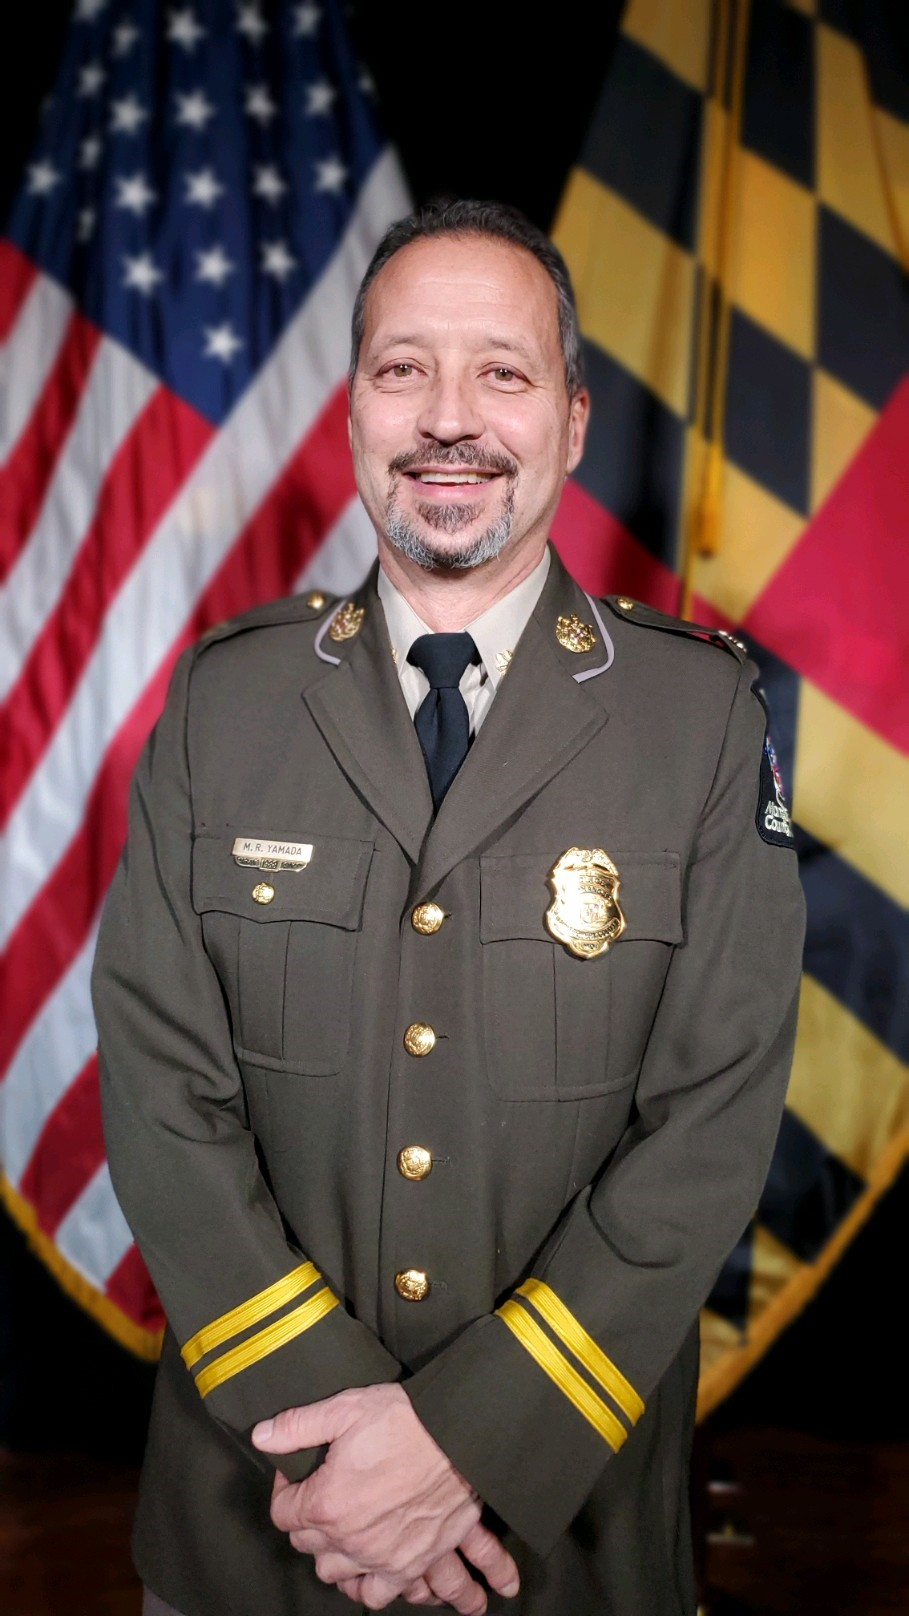 Assistant Chief Marc Yamada